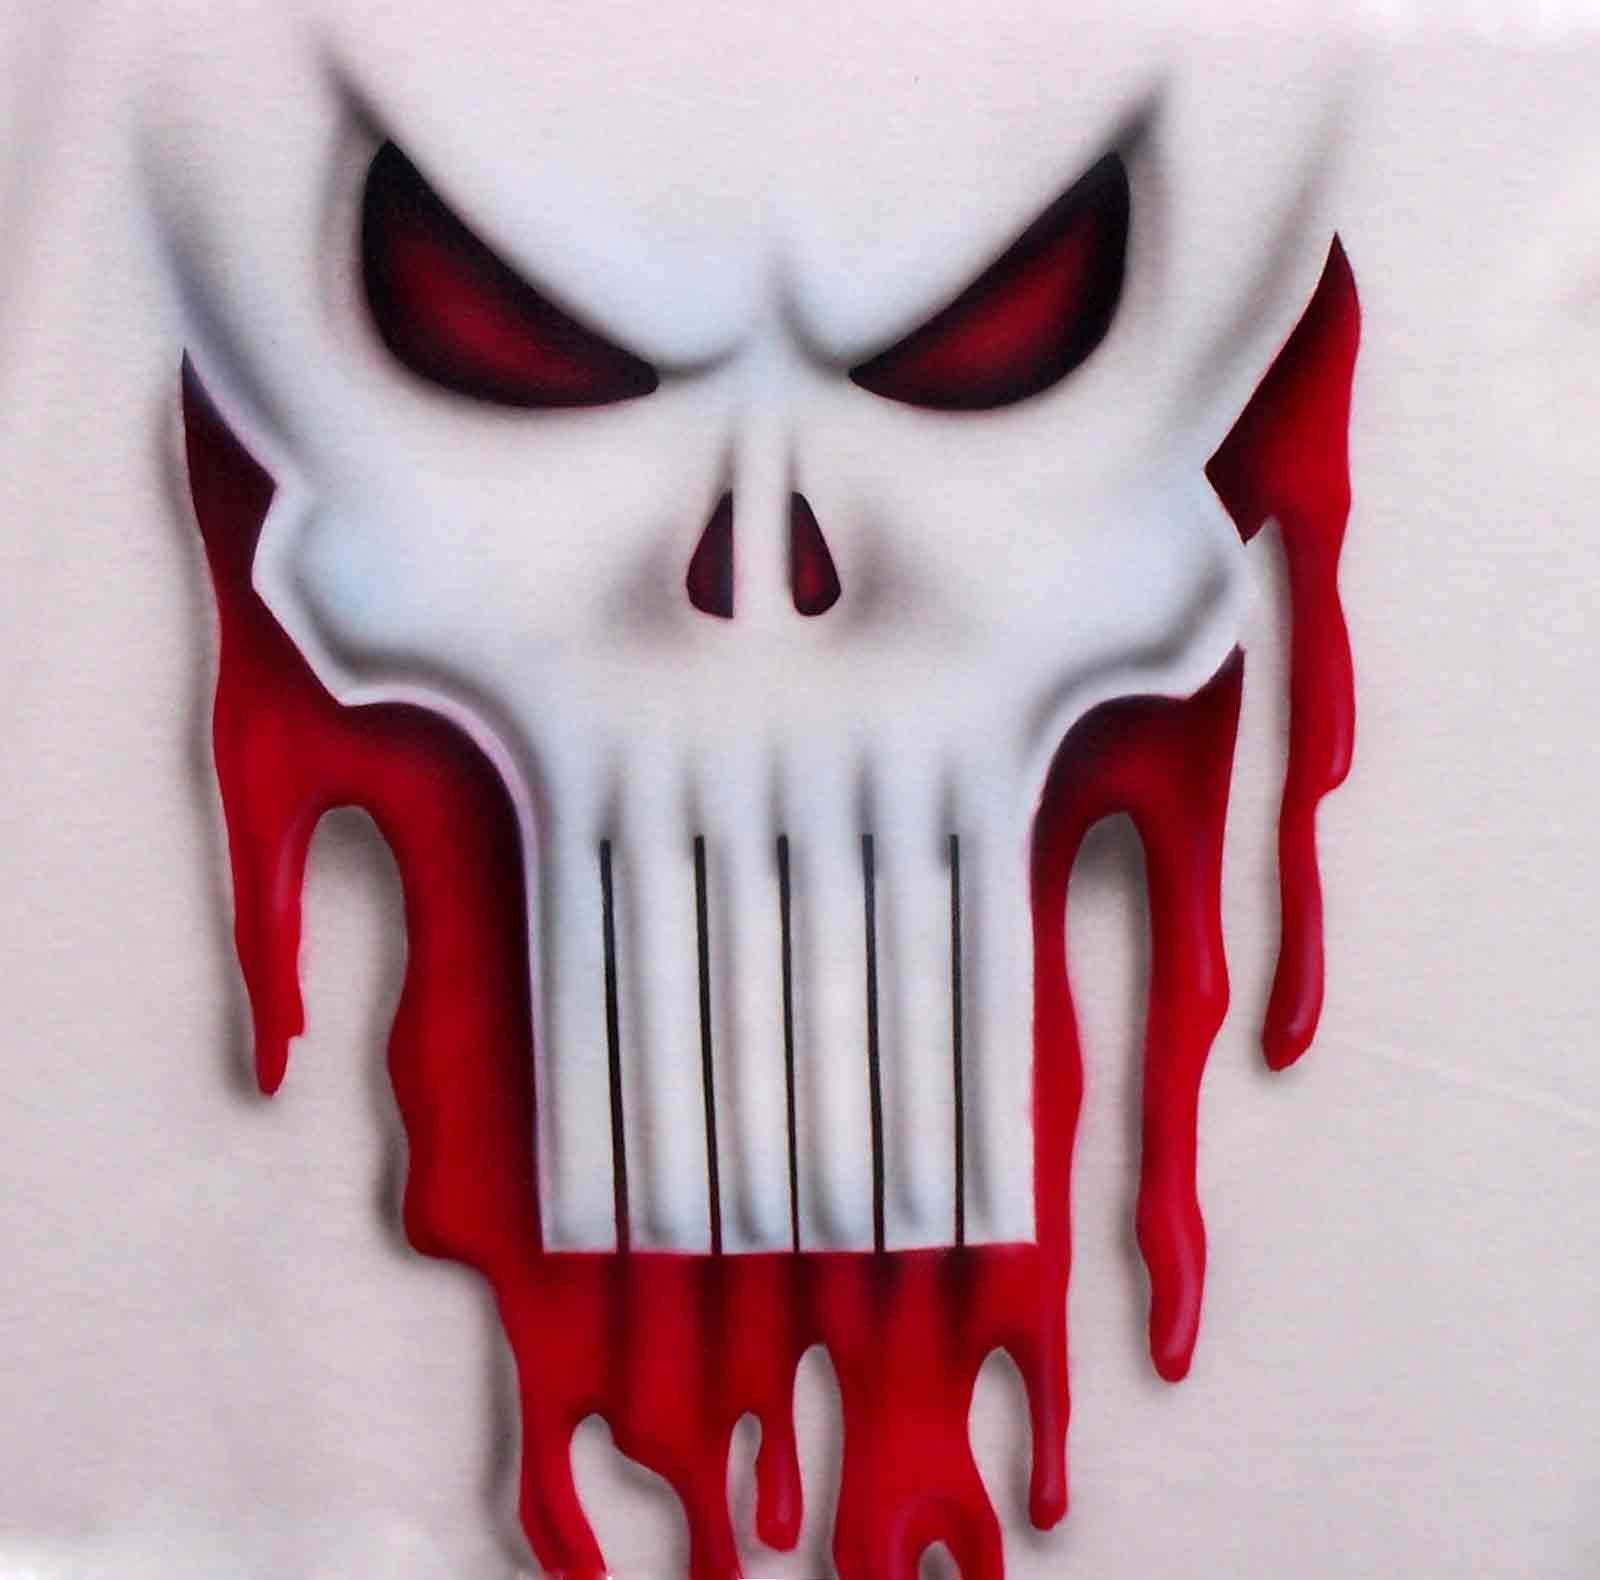 375449bee50b7 Airbrushed Punisher Ghost Skull with Blood Dripping